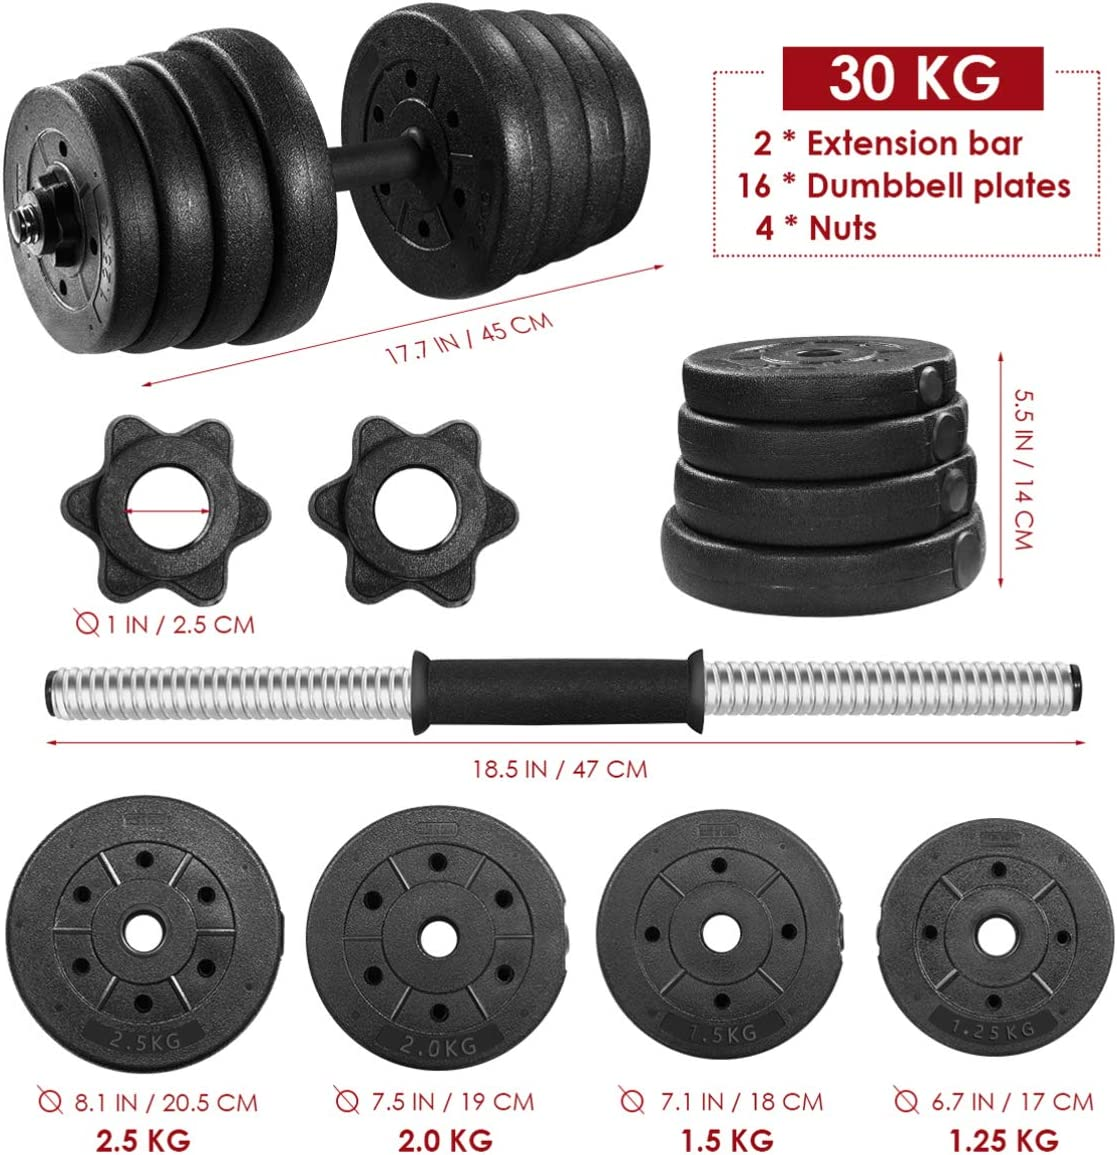 66lb Adjustable Free Weights Dumbbells Barbell Set for Exercise Lifting Workout (30KG)